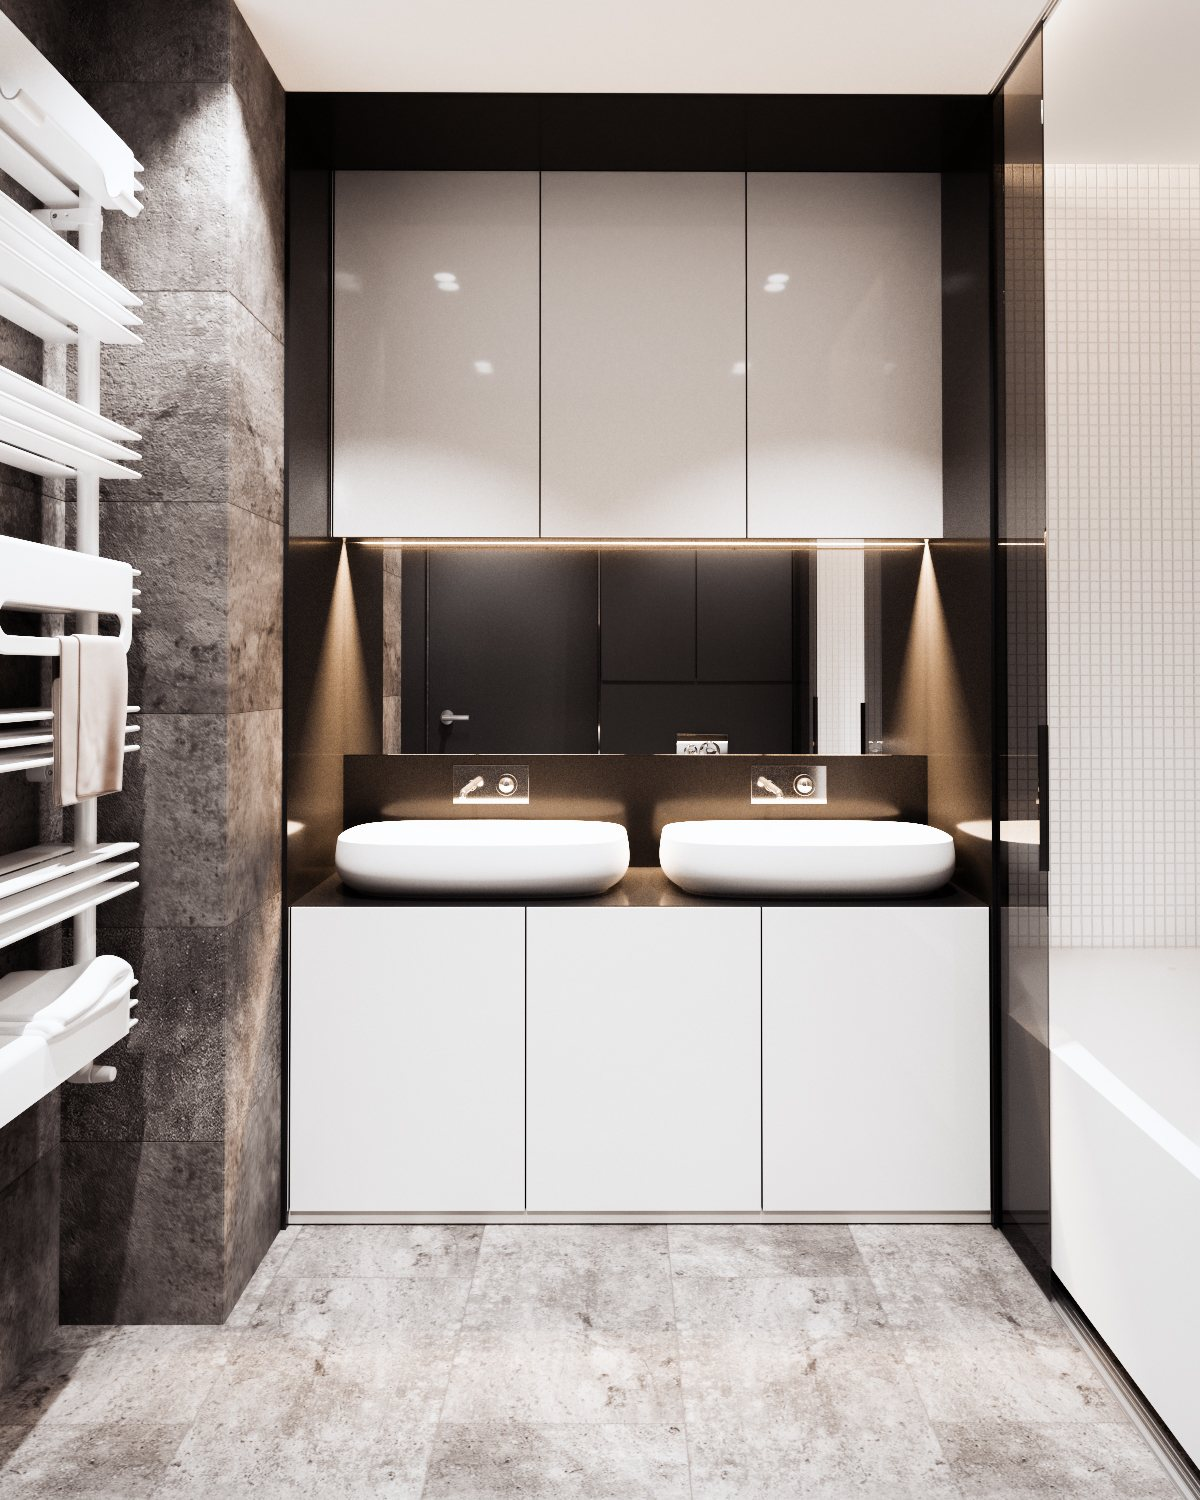 Inspiring Bathroom Features - A calm and simple family home with neat features